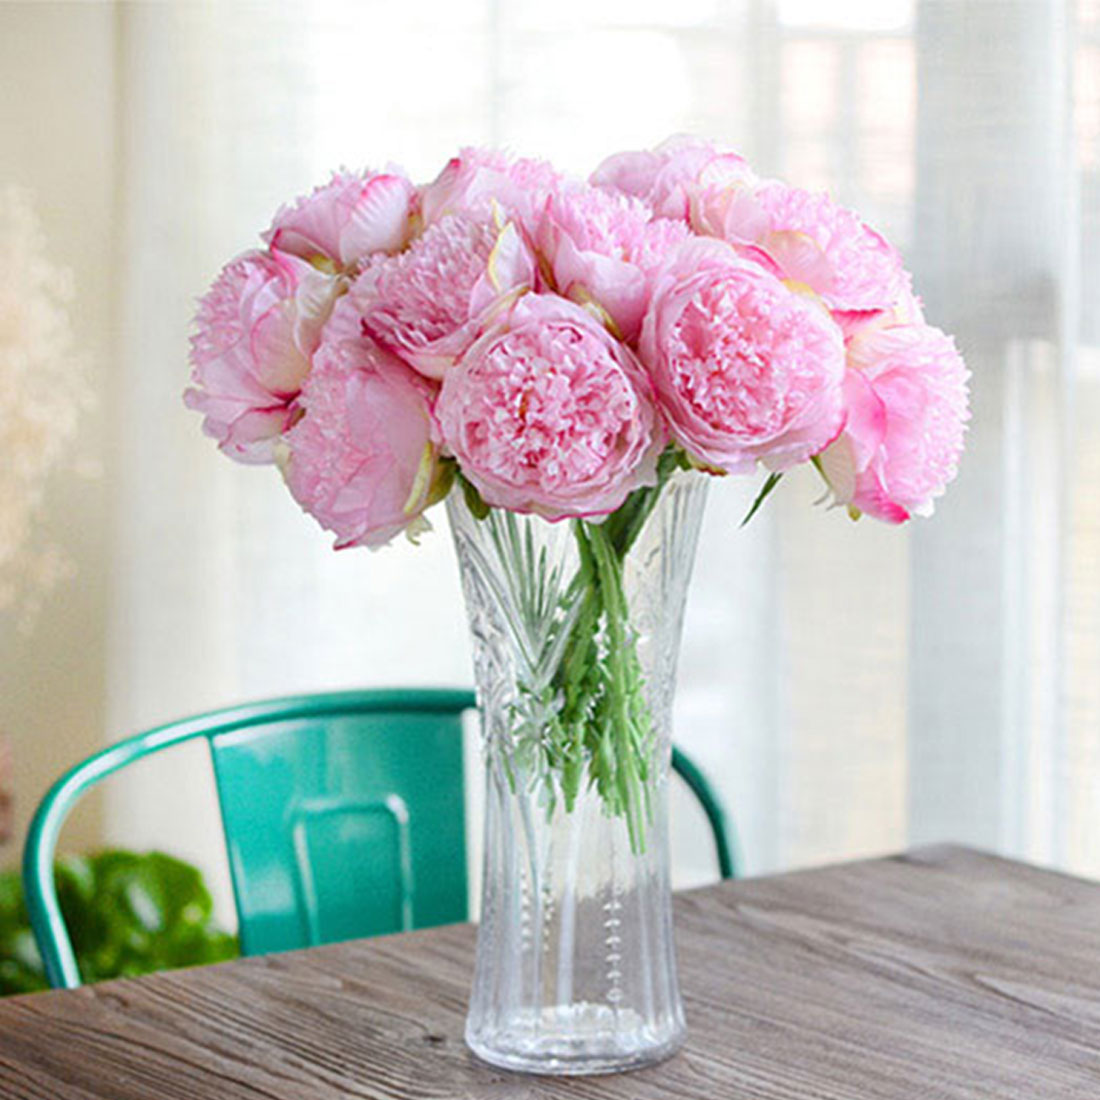 Remarkable cheap artificial flowers for weddings photos inspirations great cheap artificial fake peony silk flowers bridal izmirmasajfo